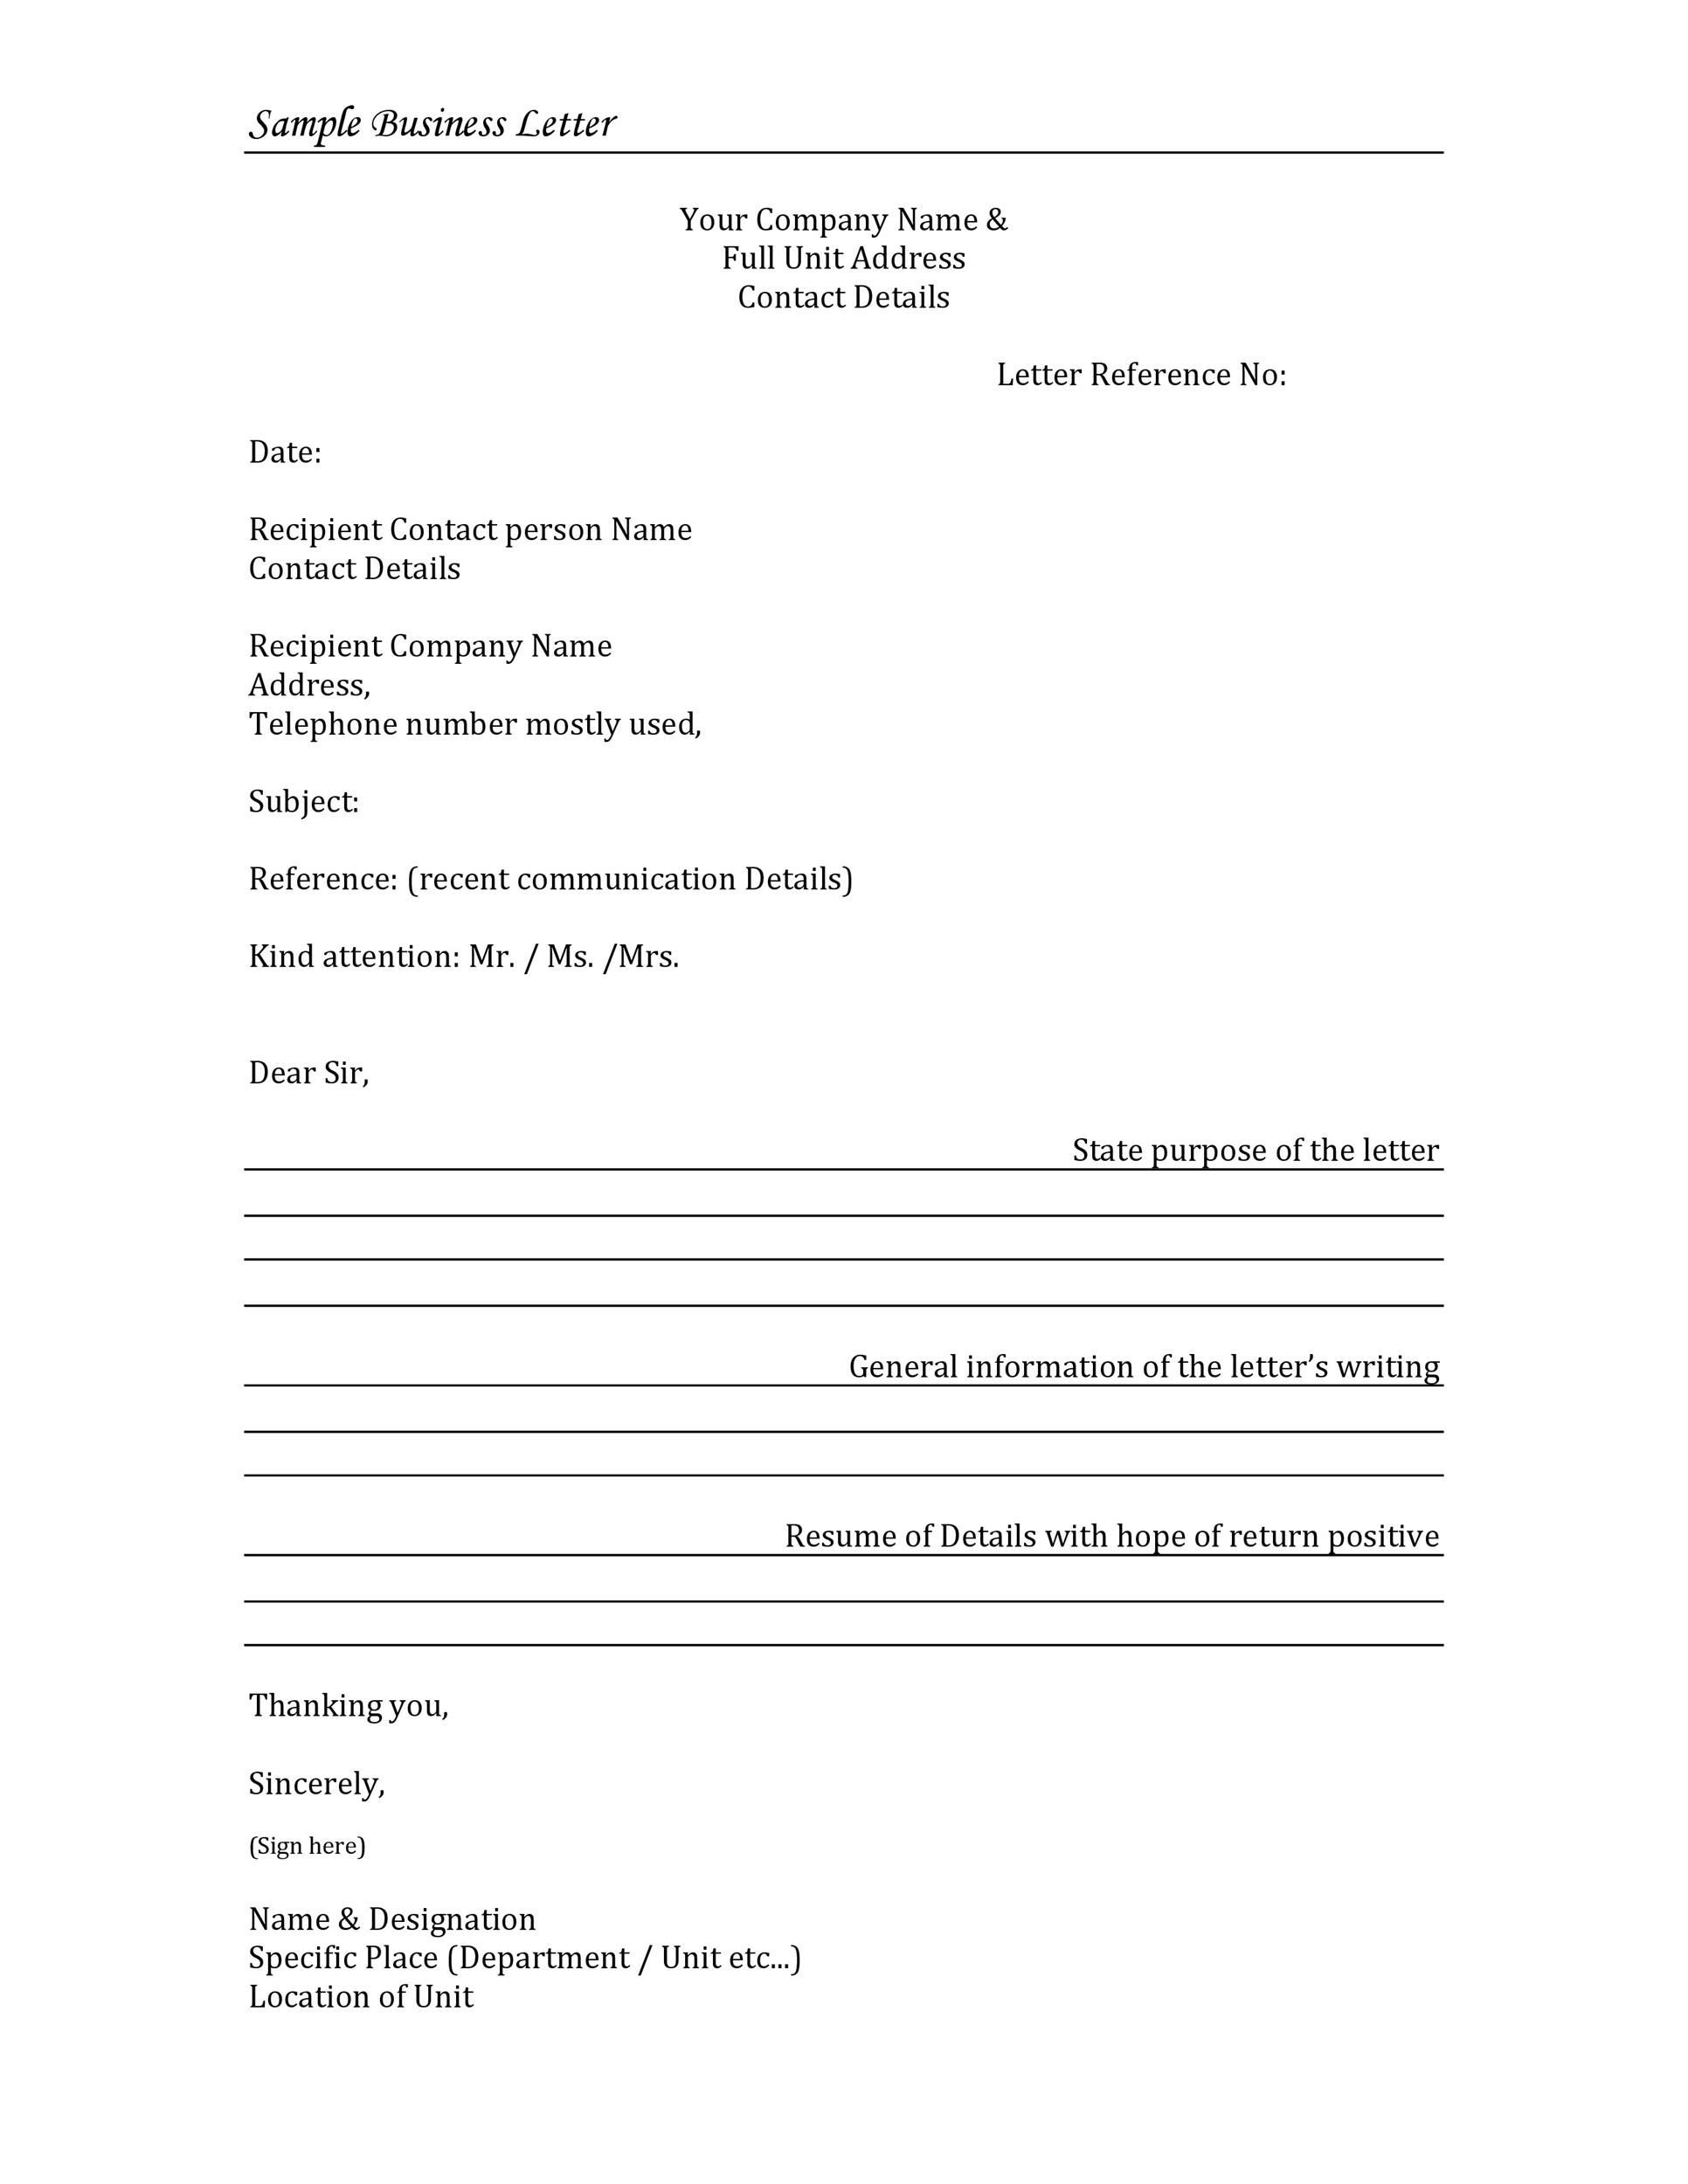 Formal Letter Business Letter Template Word from templatelab.com